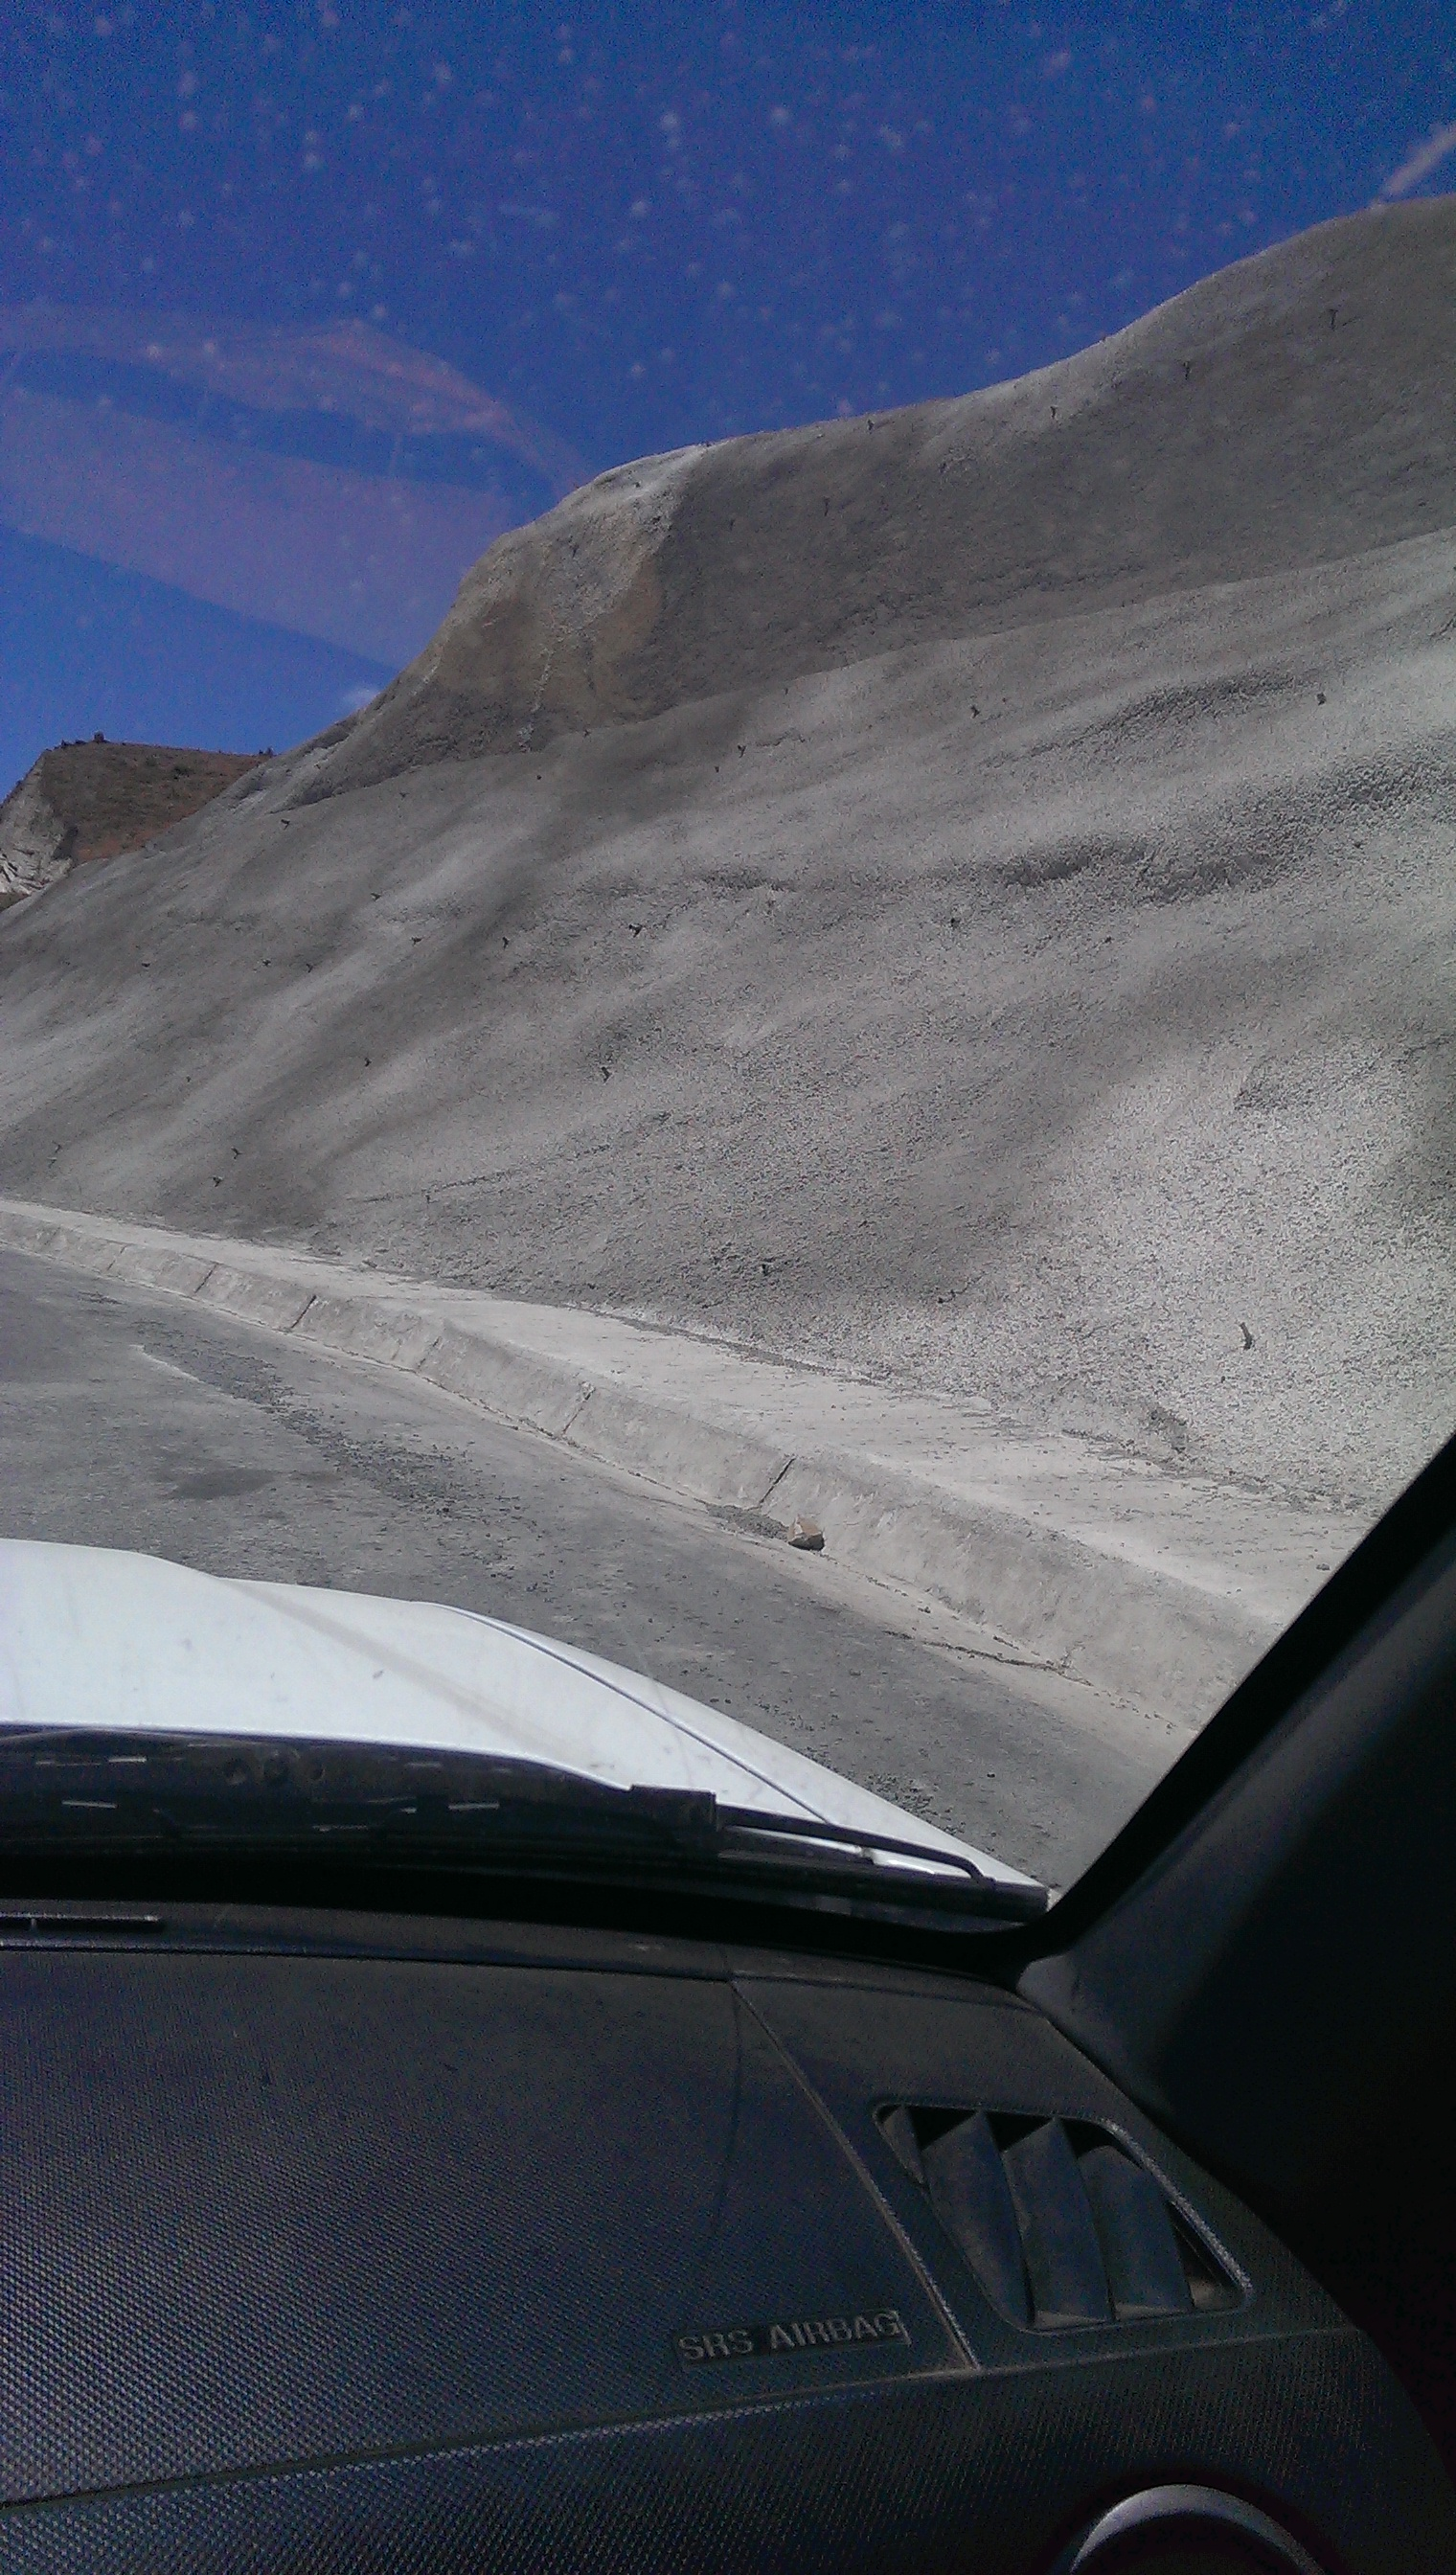 On the drive to the crater - cliffs on either side of road were 'shotcreted' to help stabilize them